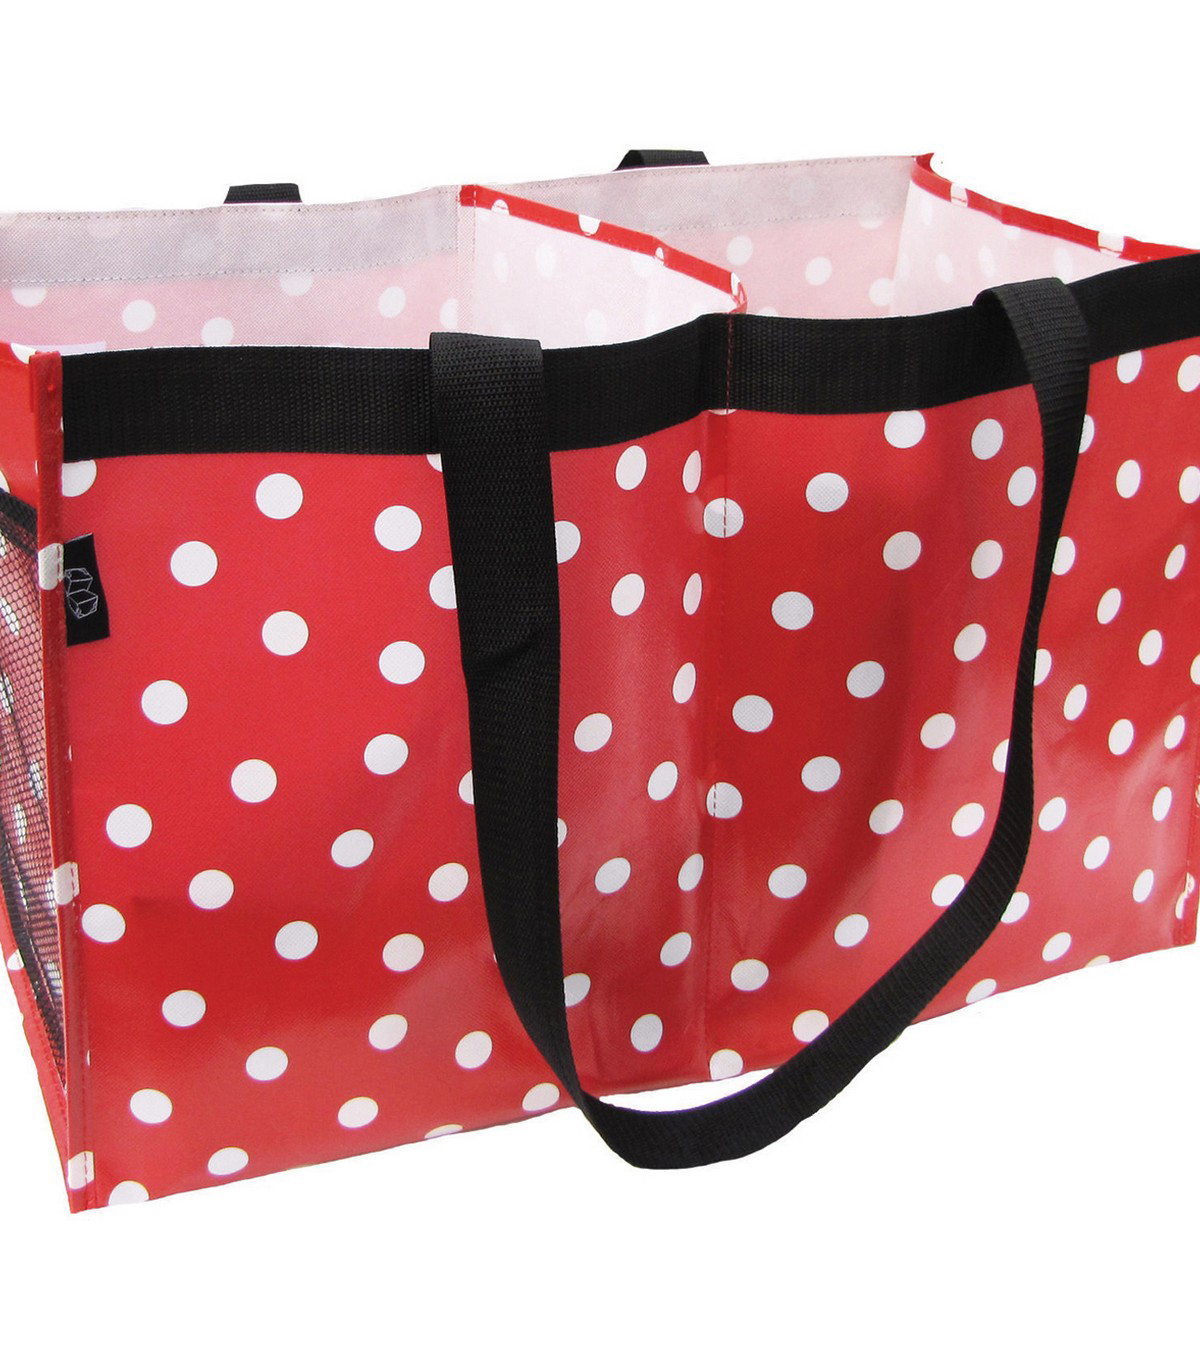 Two Lumps of Sugar Trunkey TLOS Trunk Tote-White Polka Dots on Red